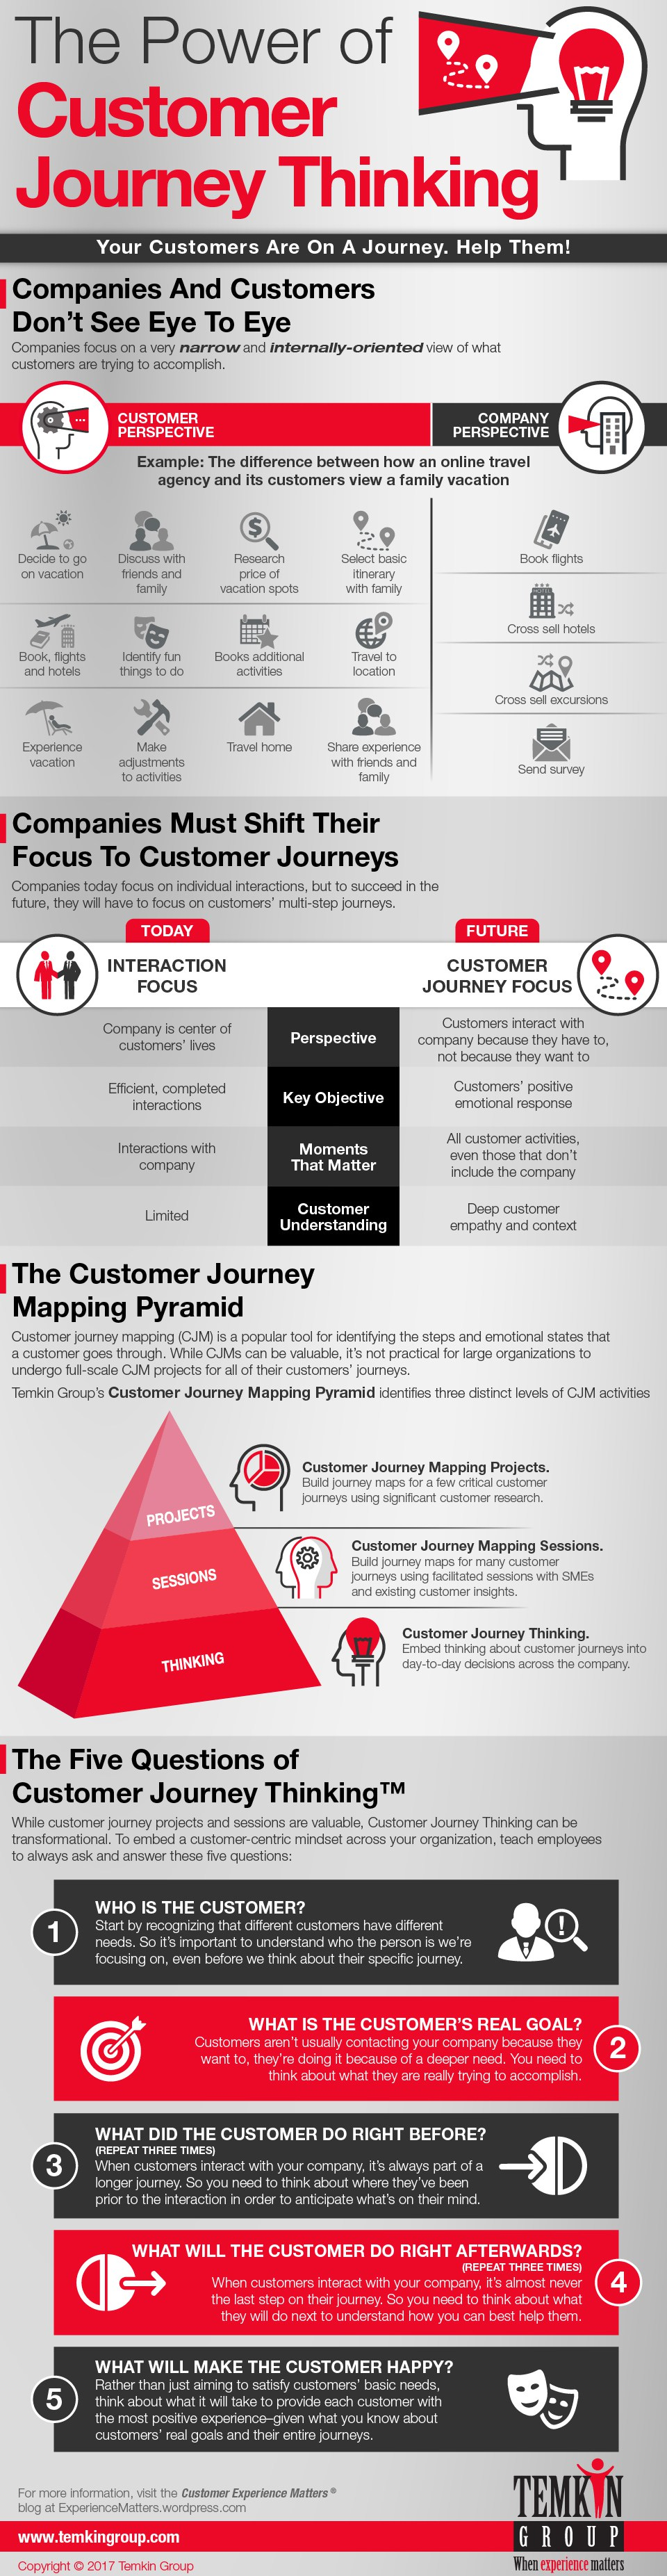 PowerOfCustomerJourneyThinking_infographic